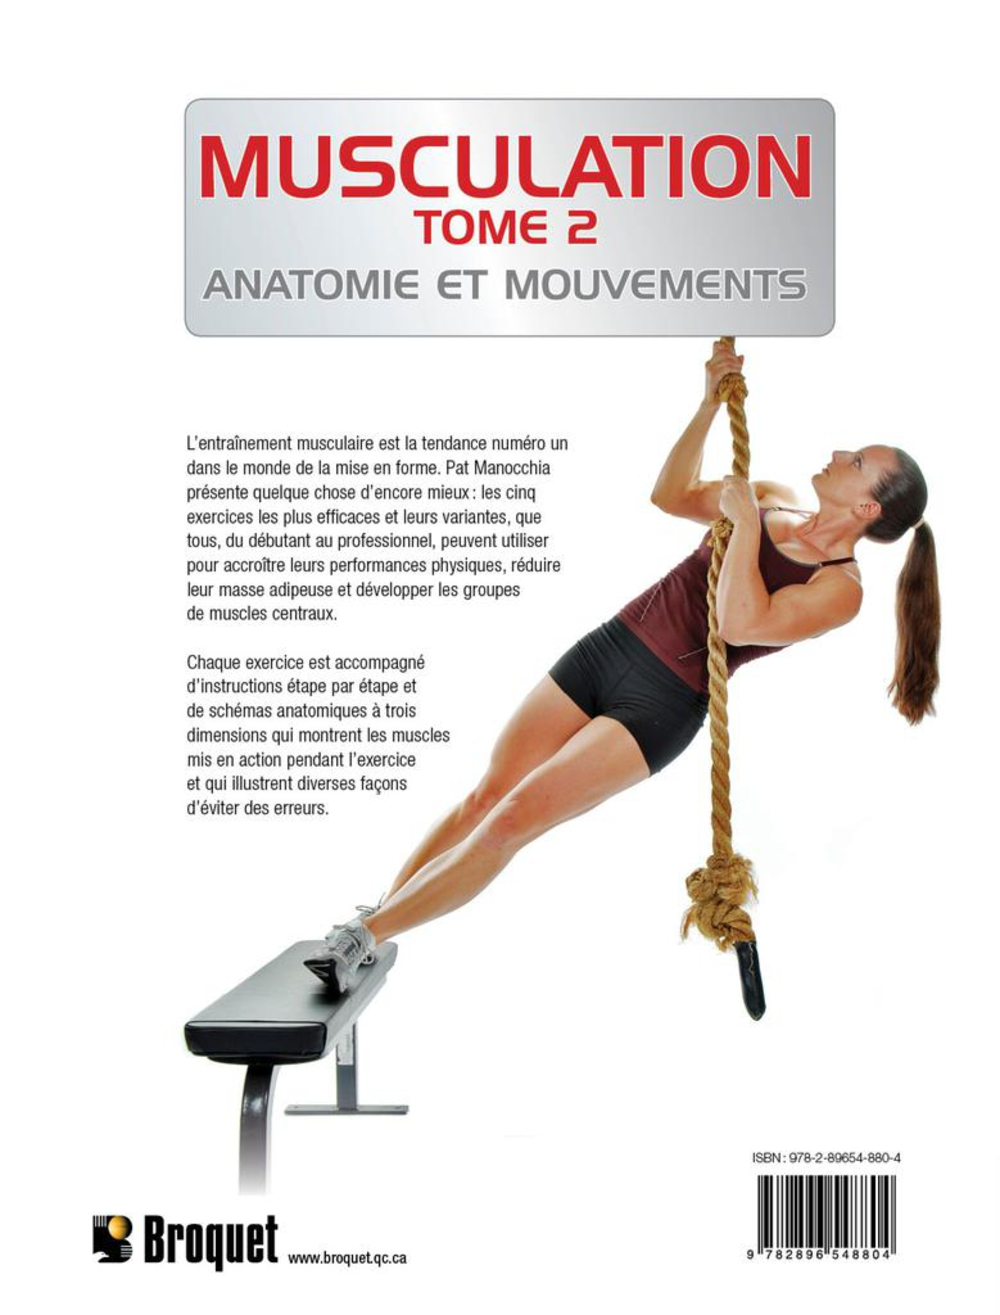 Musculation T.2: Anatomie et mouvements - Pat Manocchia revers